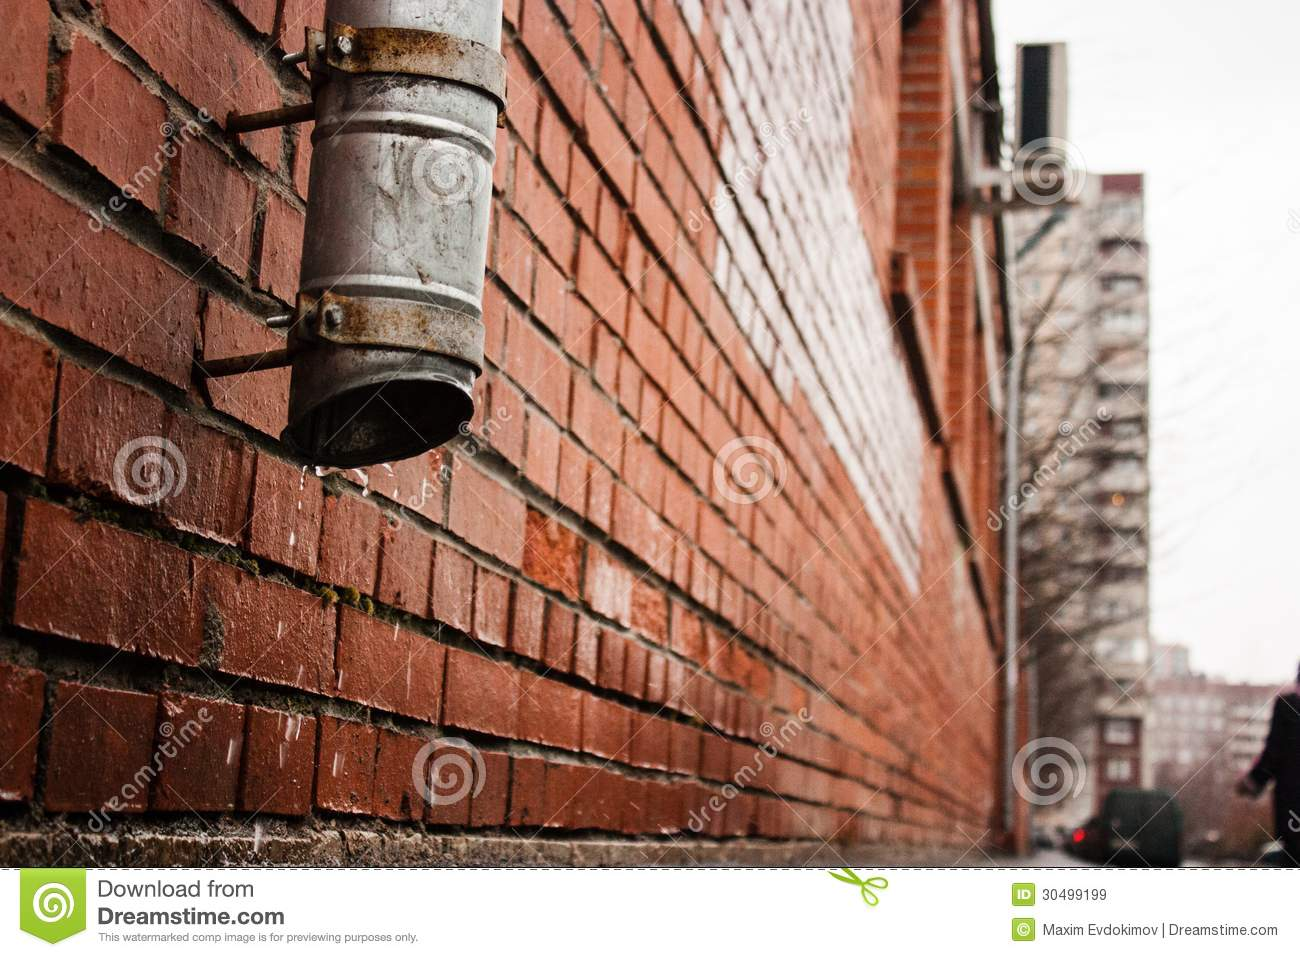 Black tube on a brick house wall drain water stock image for Water wall plumbing